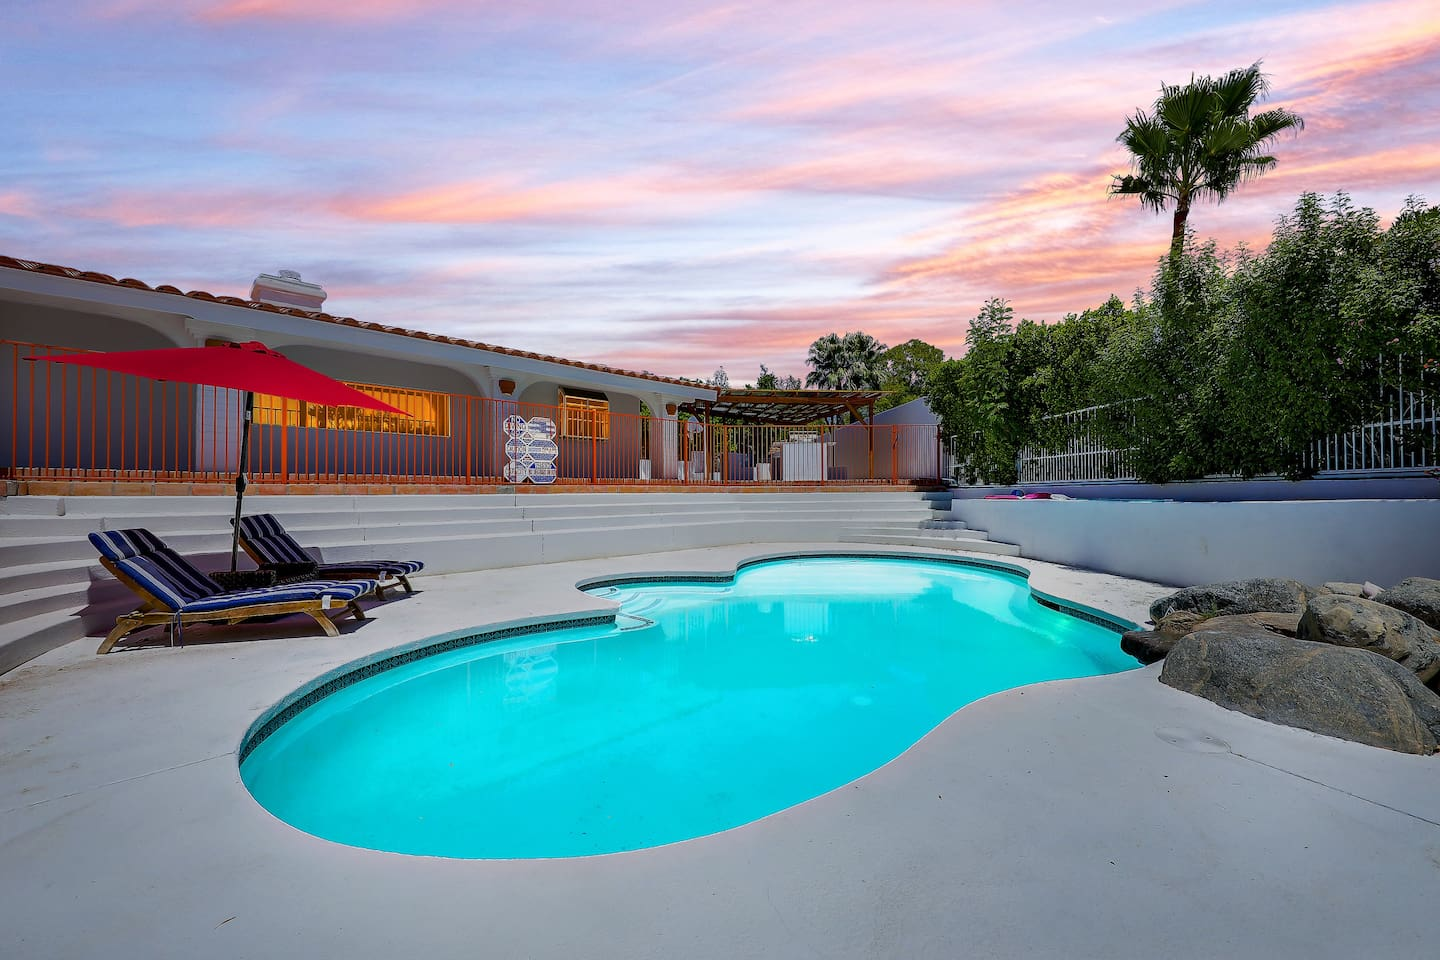 Beautiful Outdoor Area of Pool and Porch